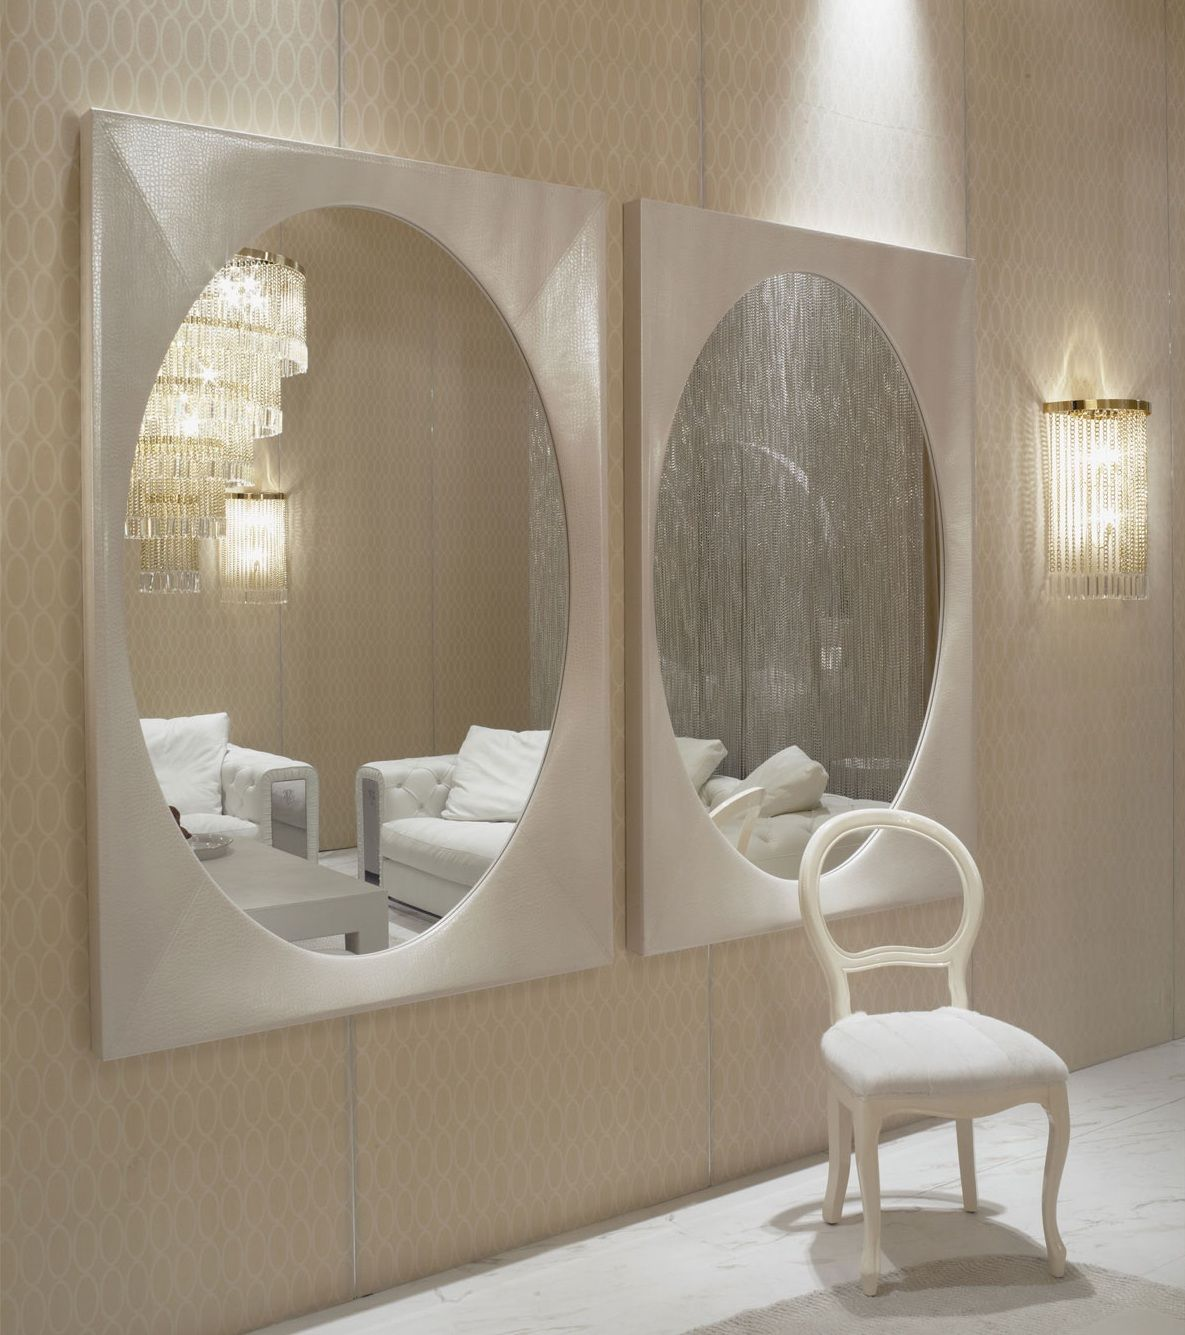 instyledecorcom wall mirrors luxury designer wall mirrors  - instyledecorcom wall mirrors luxury designer wall mirrors modern wallmirrors